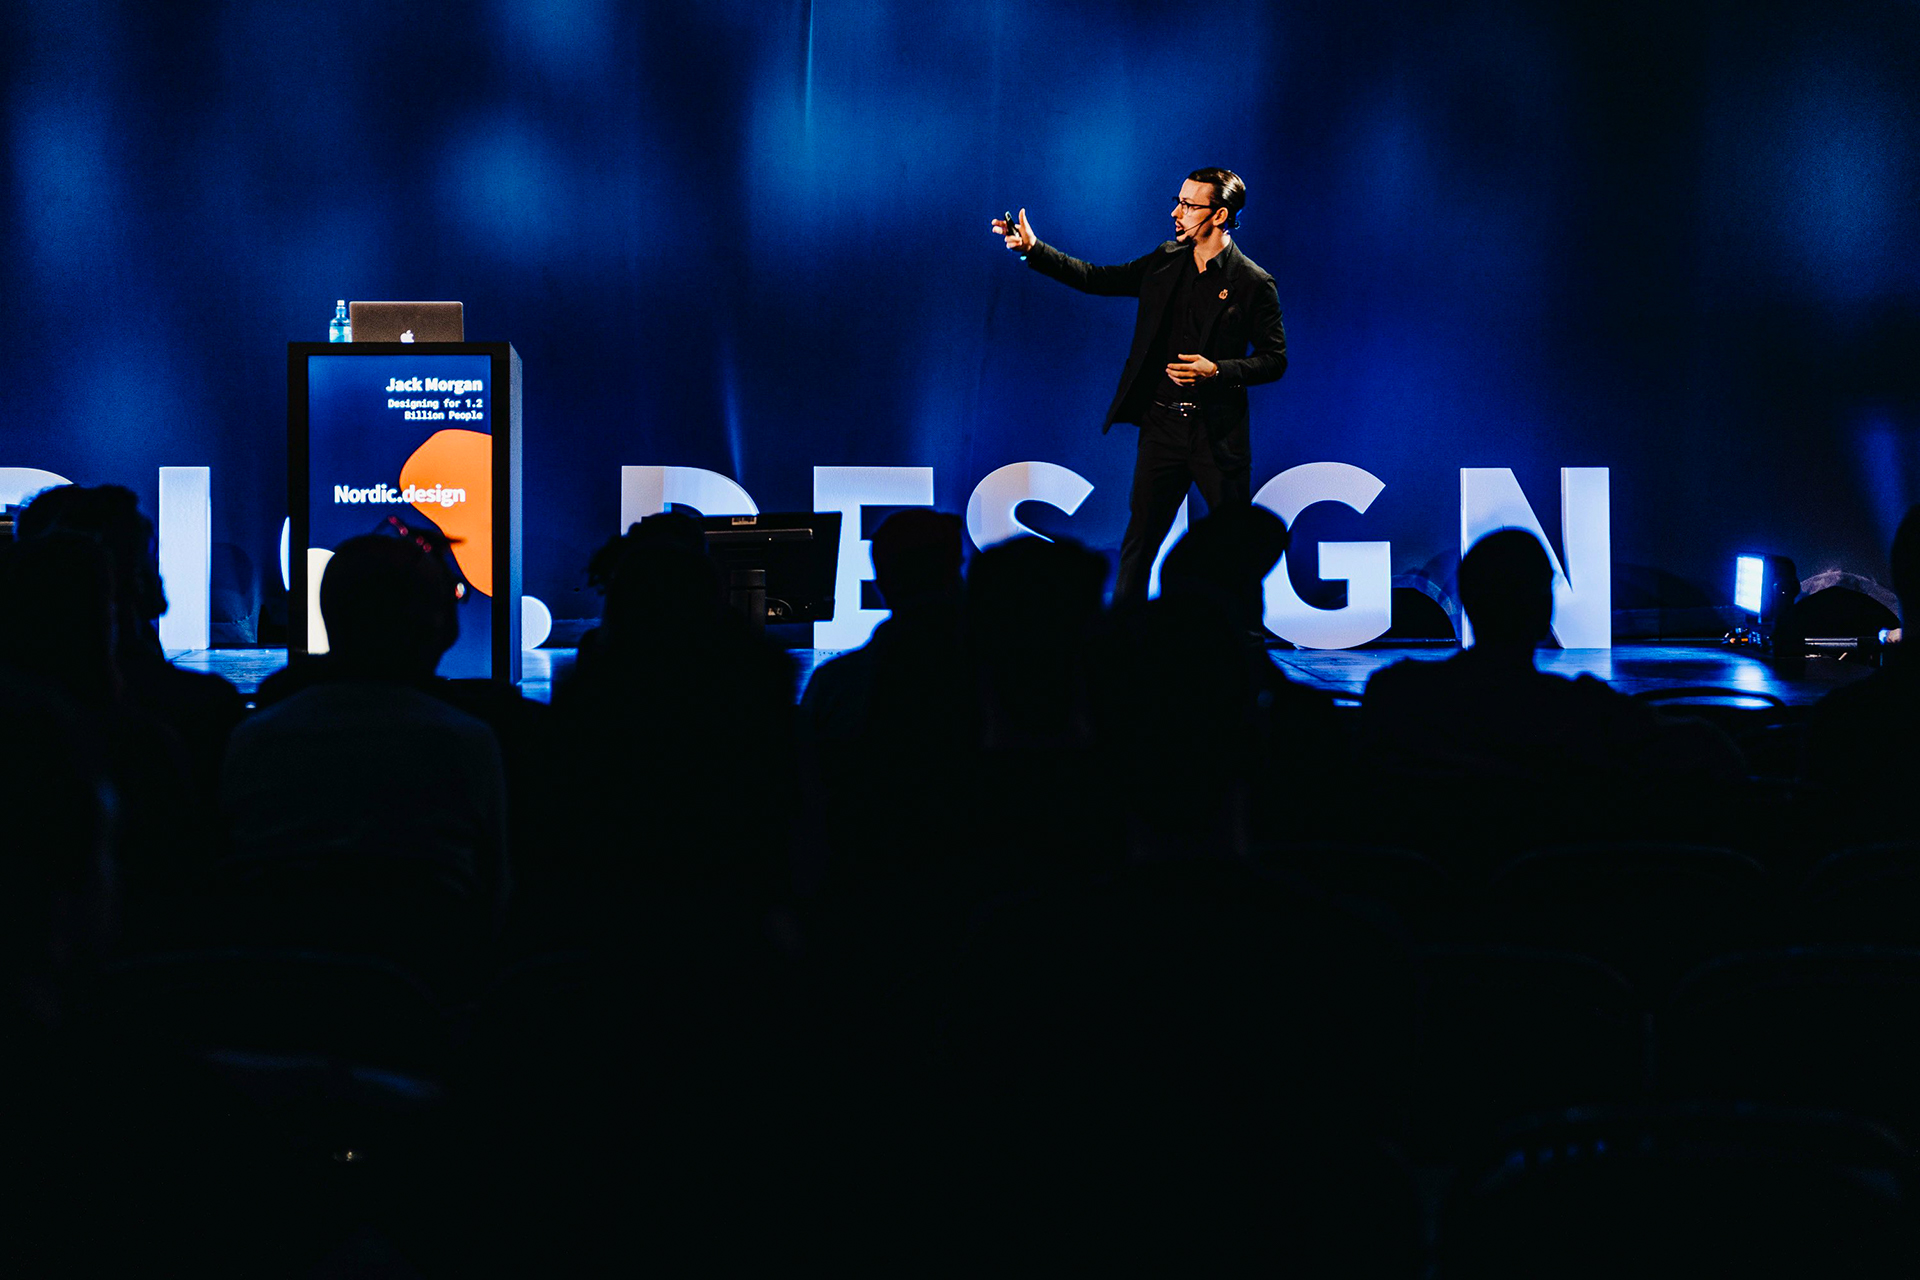 Jack Morgan speaks on-stage in Sweden, 2019